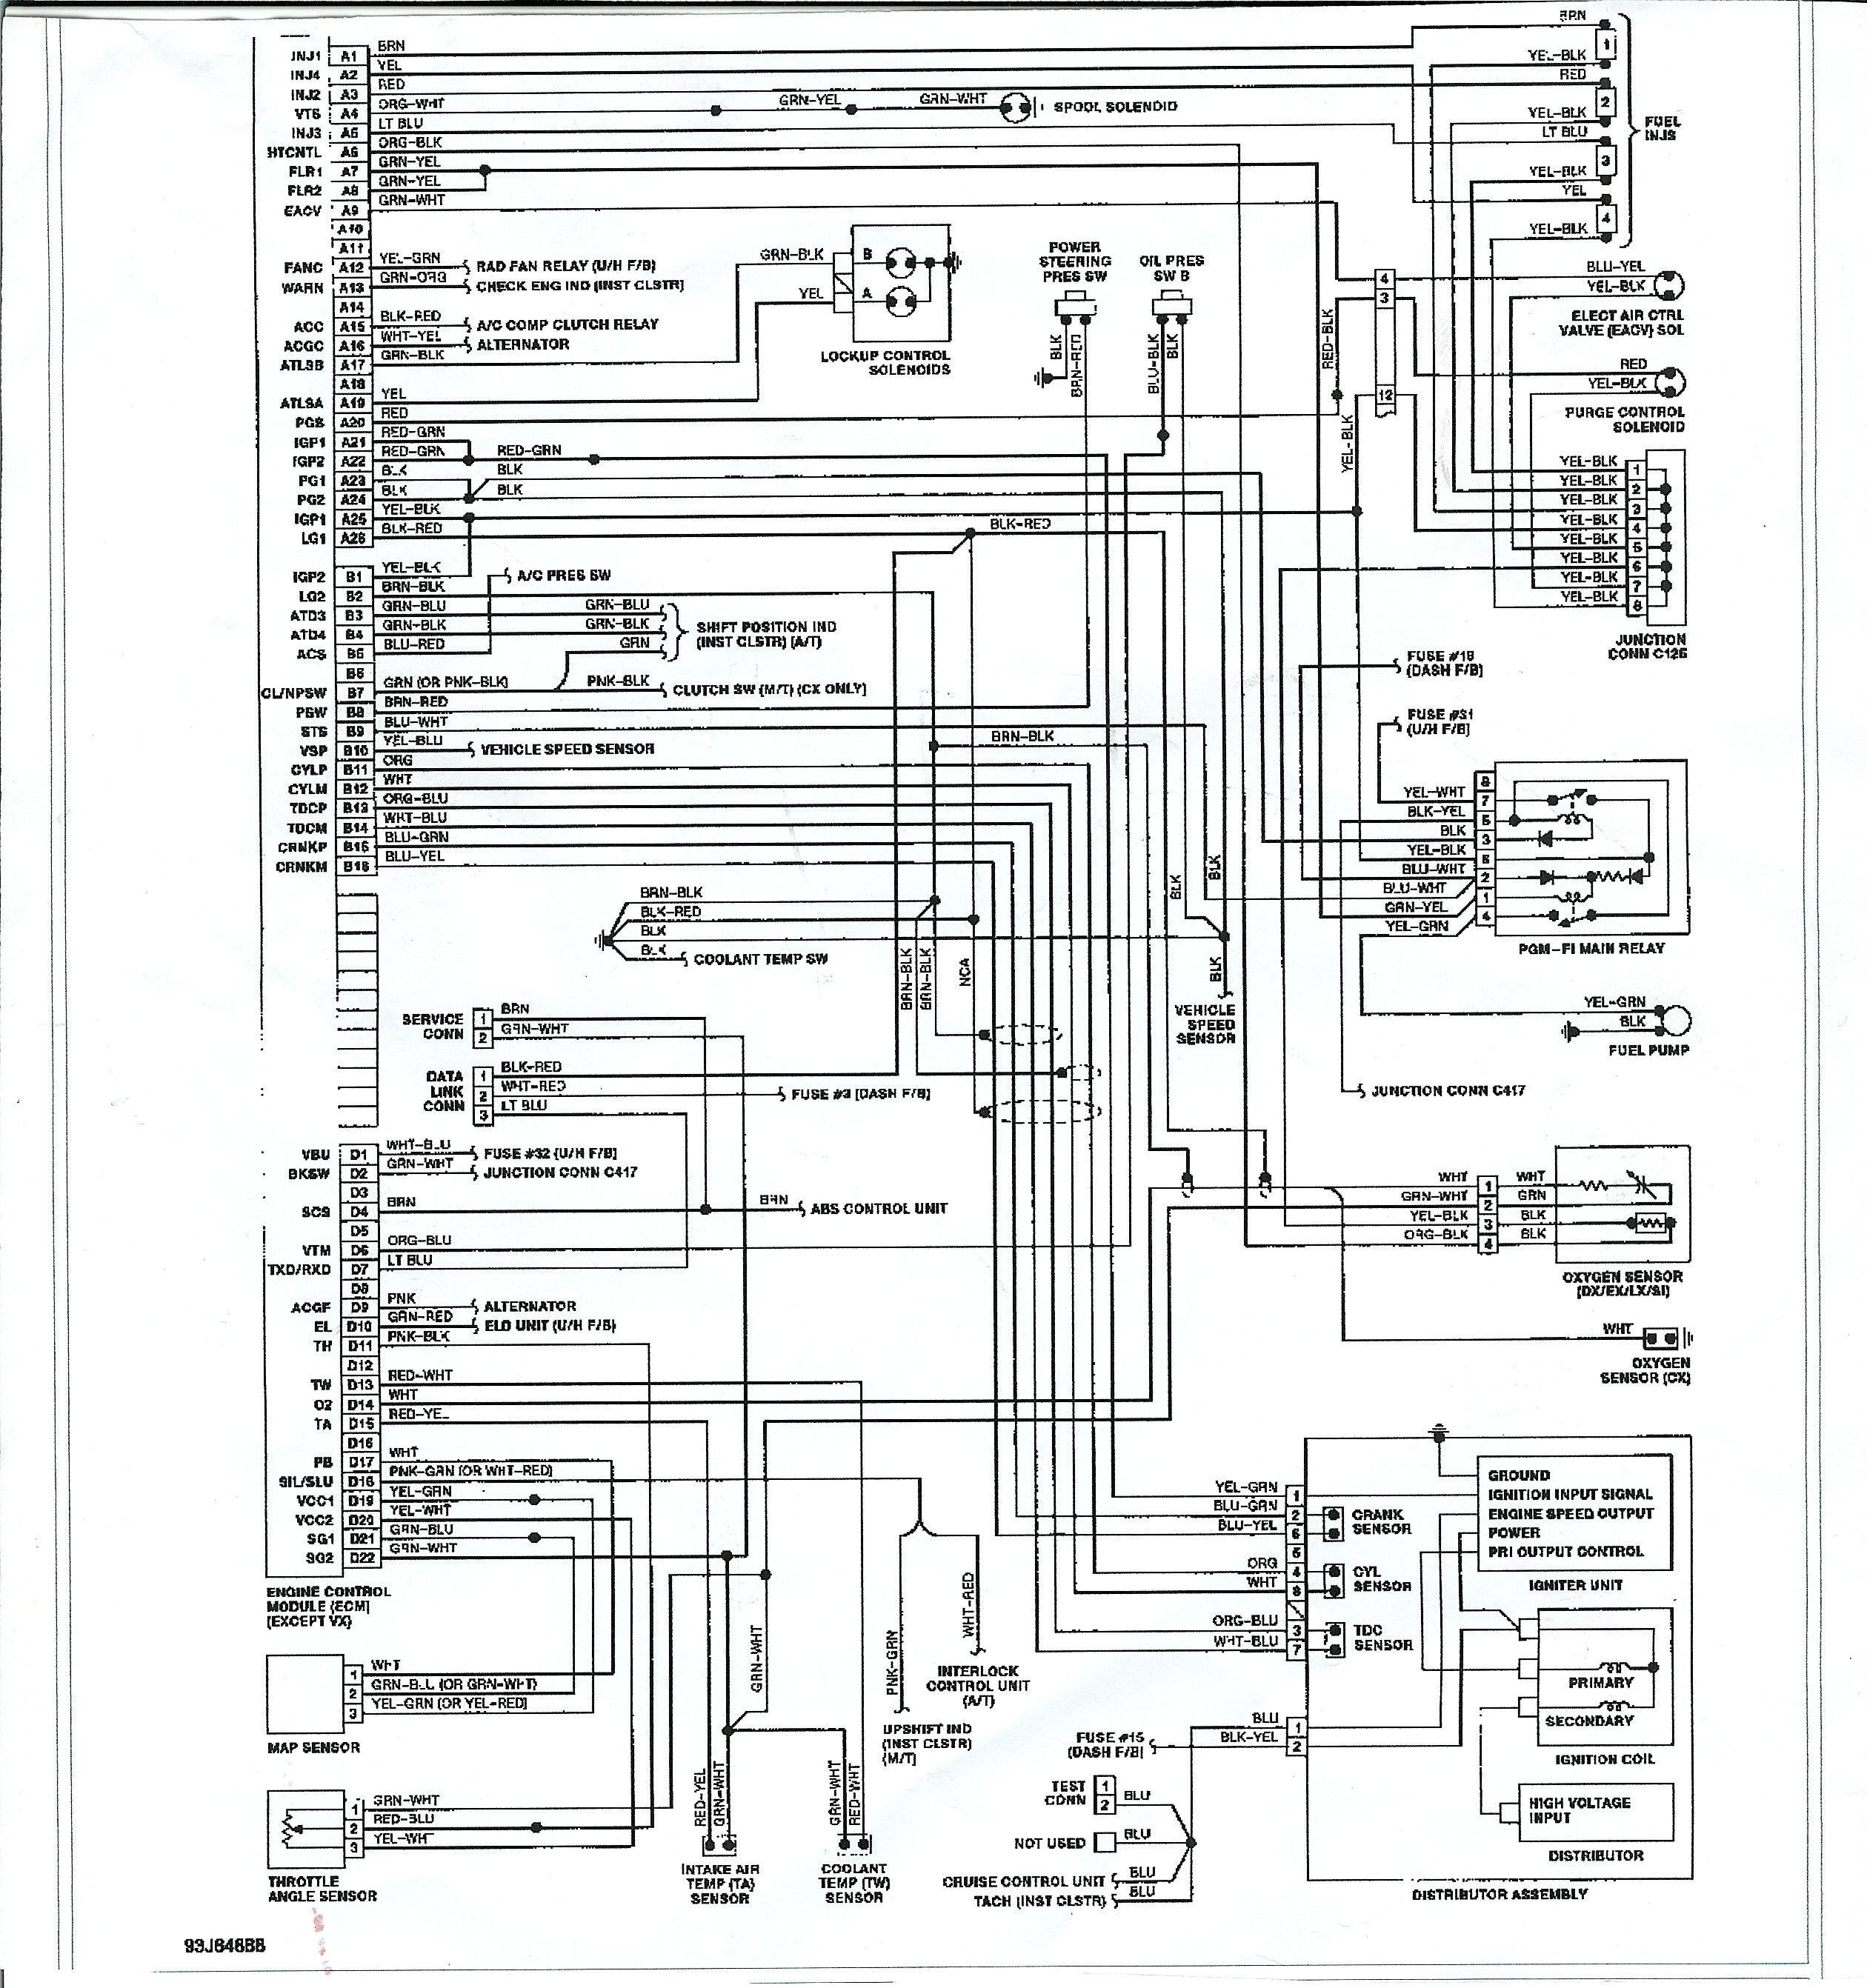 [DIAGRAM_1JK]  85C92 Tcm Wiring Diagram | Wiring Resources | 1996 Ford 655d Backhoe Wiring Diagram |  | Wiring Resources